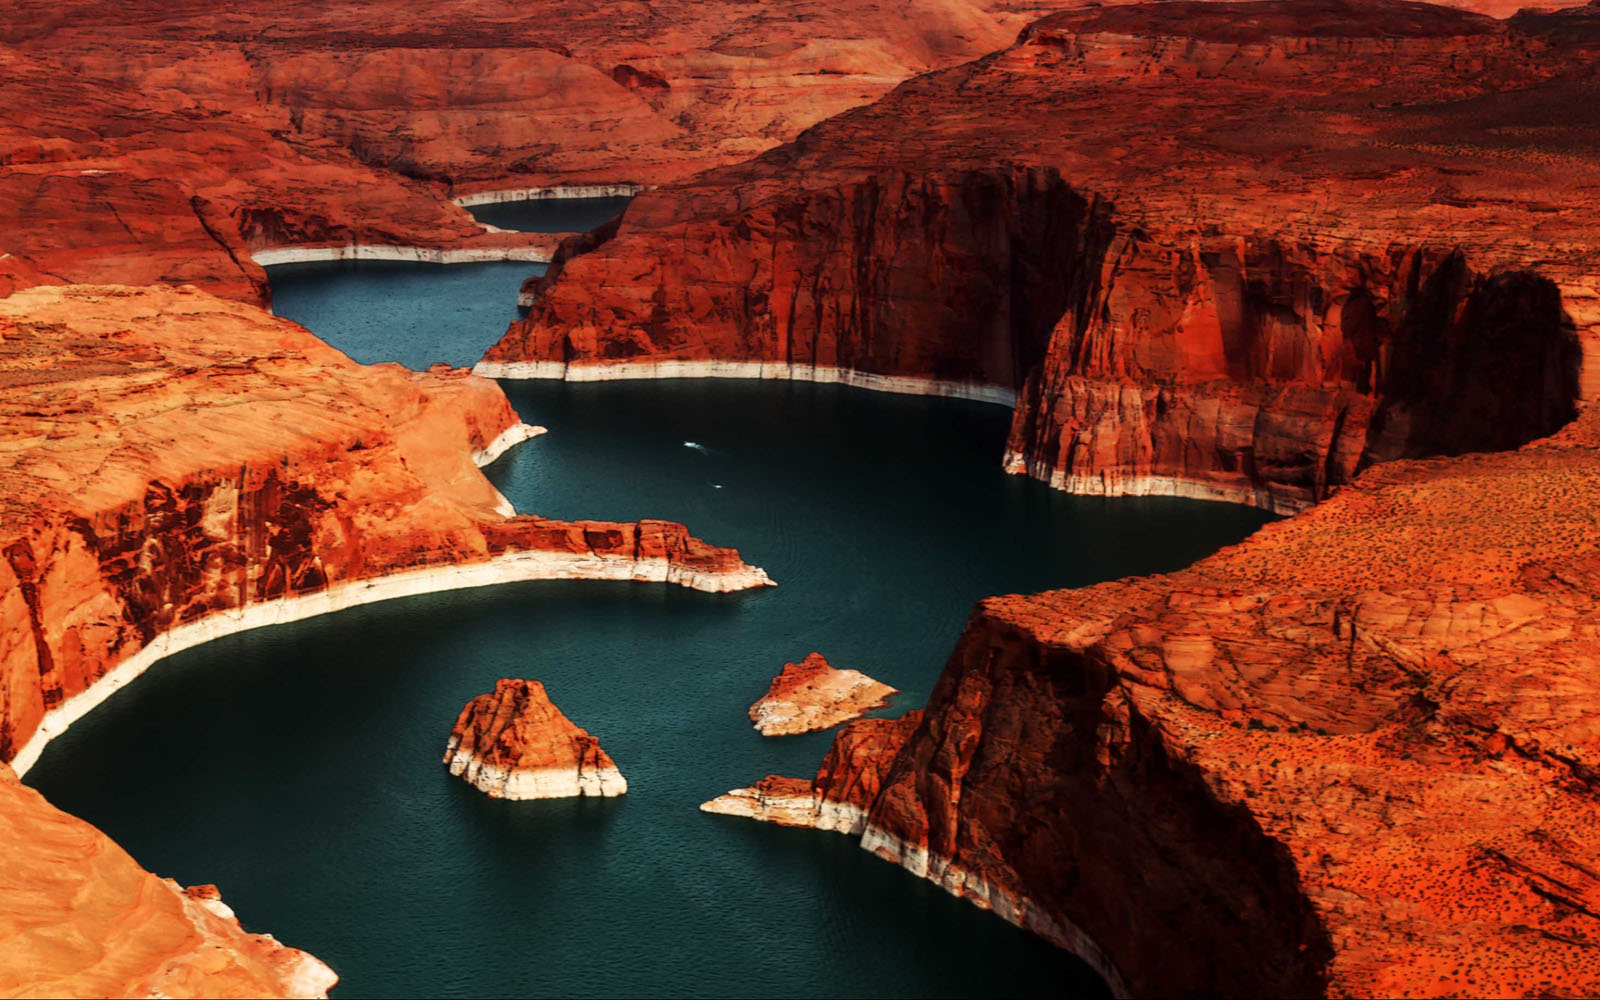 Wallpapers lake powell wallpapers - Photo of wallpaper ...